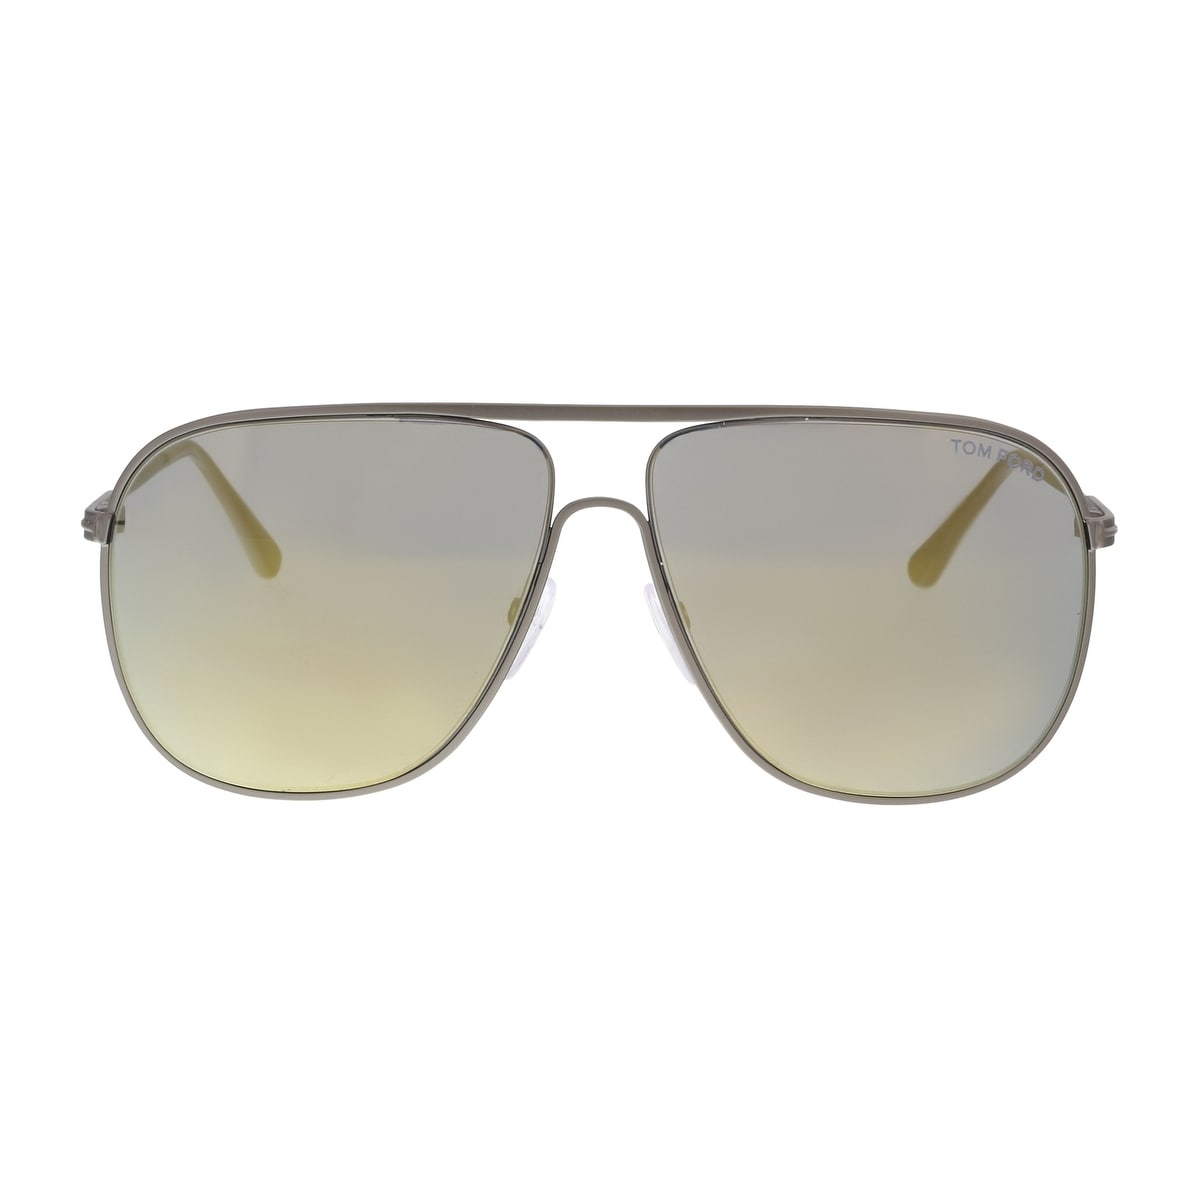 a2447621d8 Shop Tom Ford FT0451 S 09C DOMINIC Pewter Aviator Sunglasses - 60-11-140 -  Free Shipping Today - Overstock - 19223113